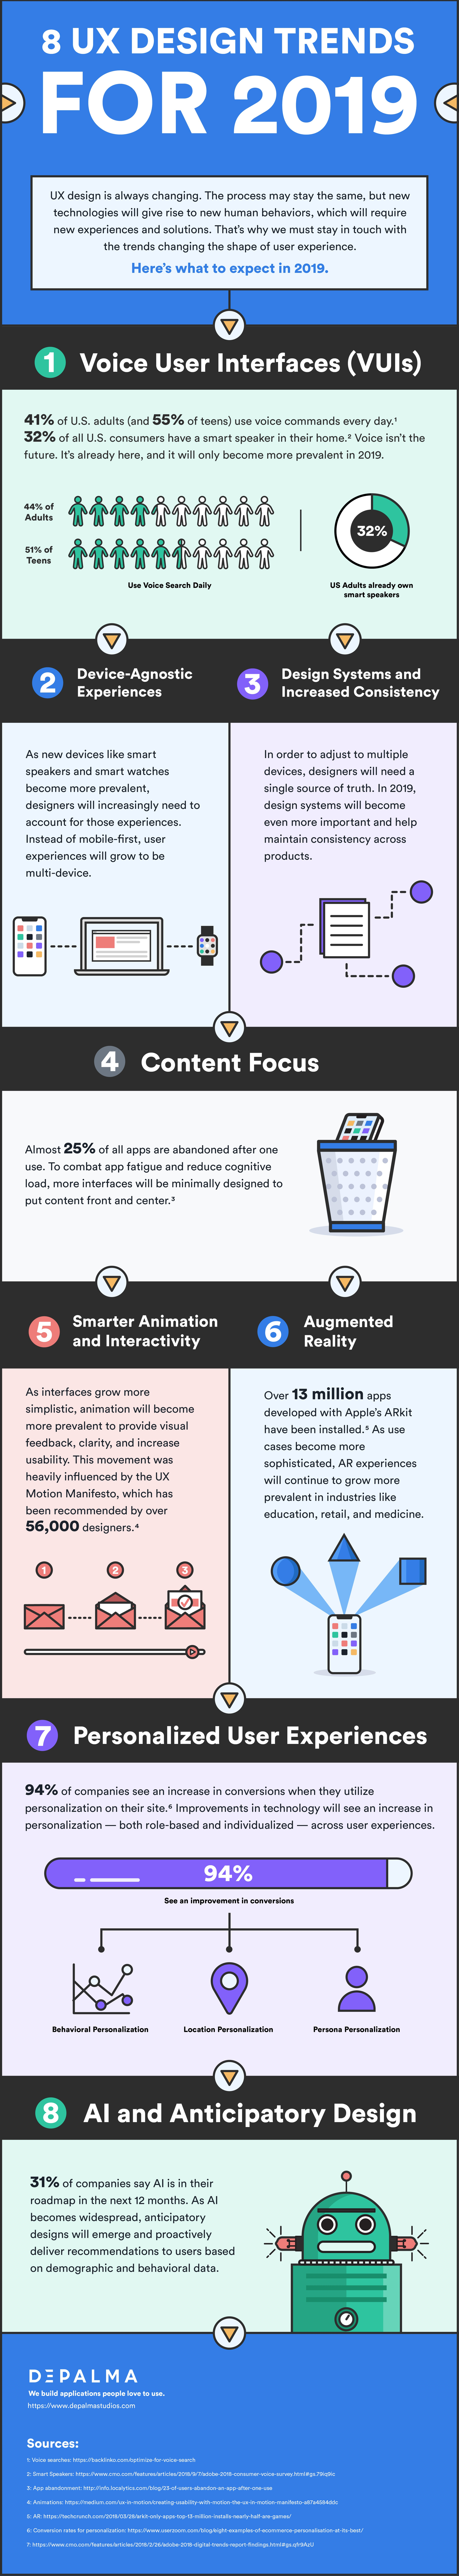 UX trends for 2019 infographic